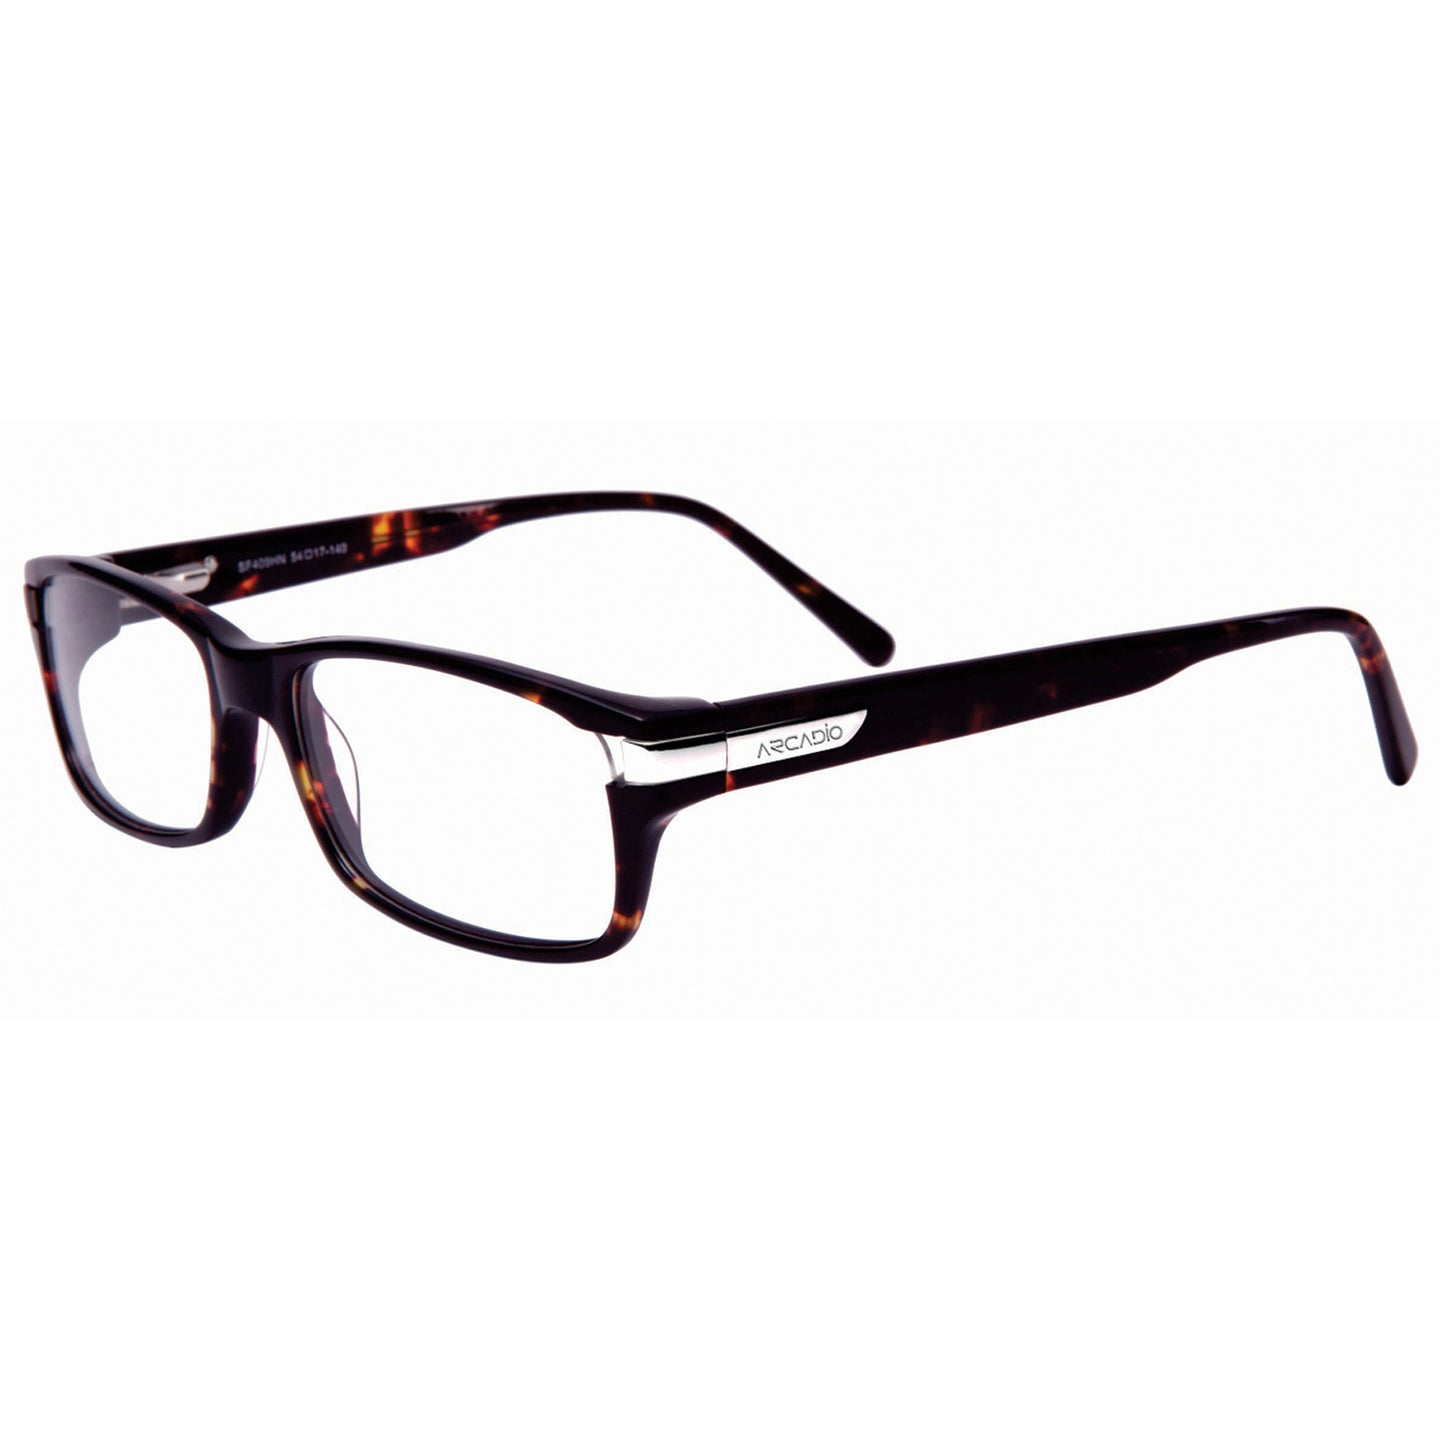 Two Toned Teen Shell Frame - SF409 - ARCADIO LIFESTYLE